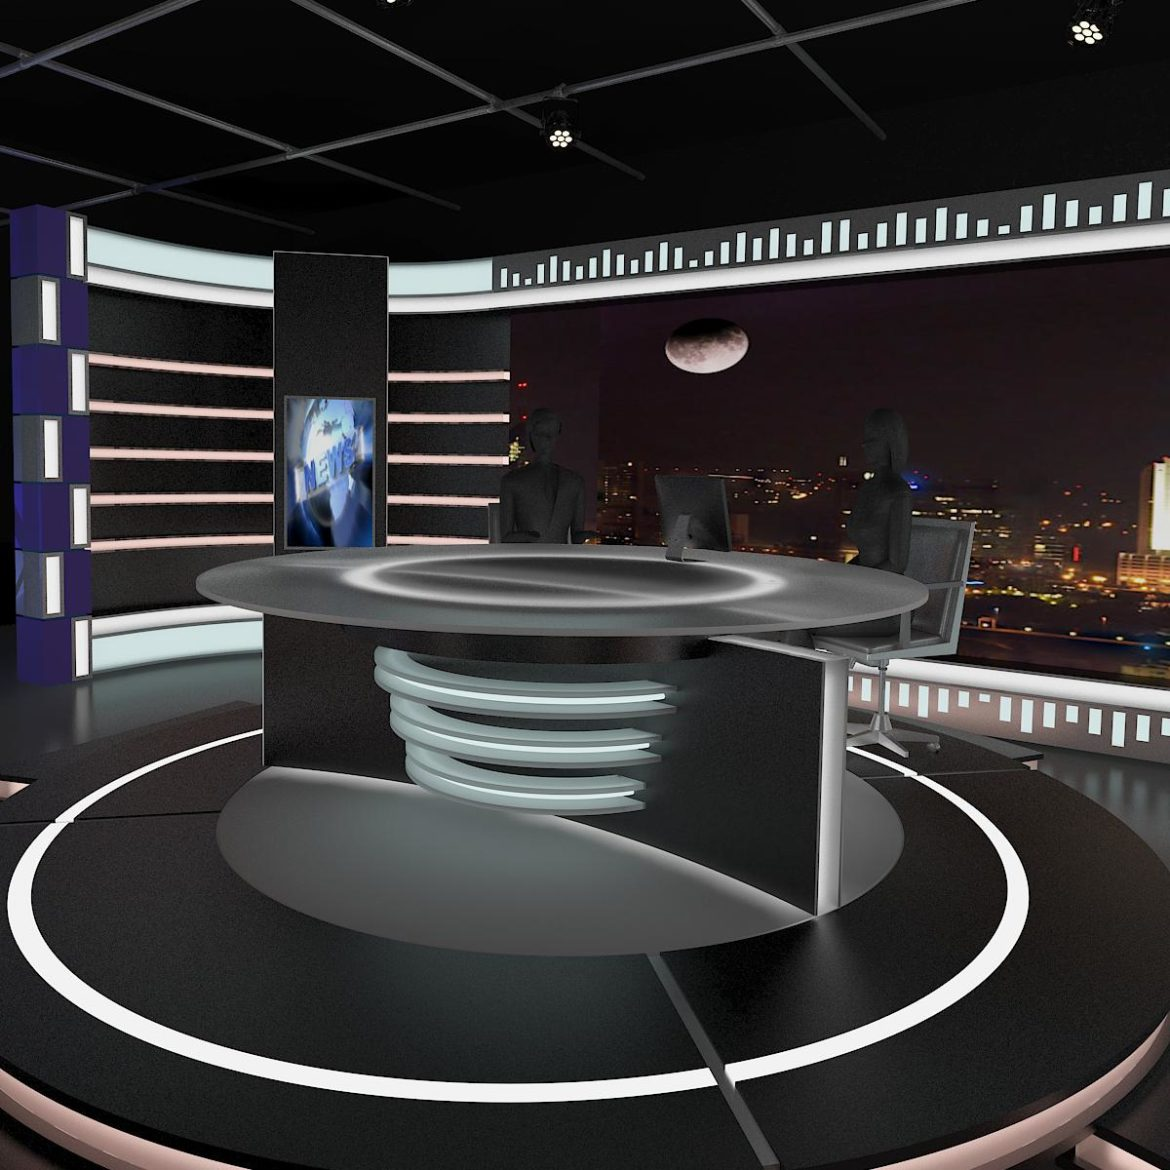 virtual tv studio news set 6 3d model 3ds c4d dxf fbx max obj 305604